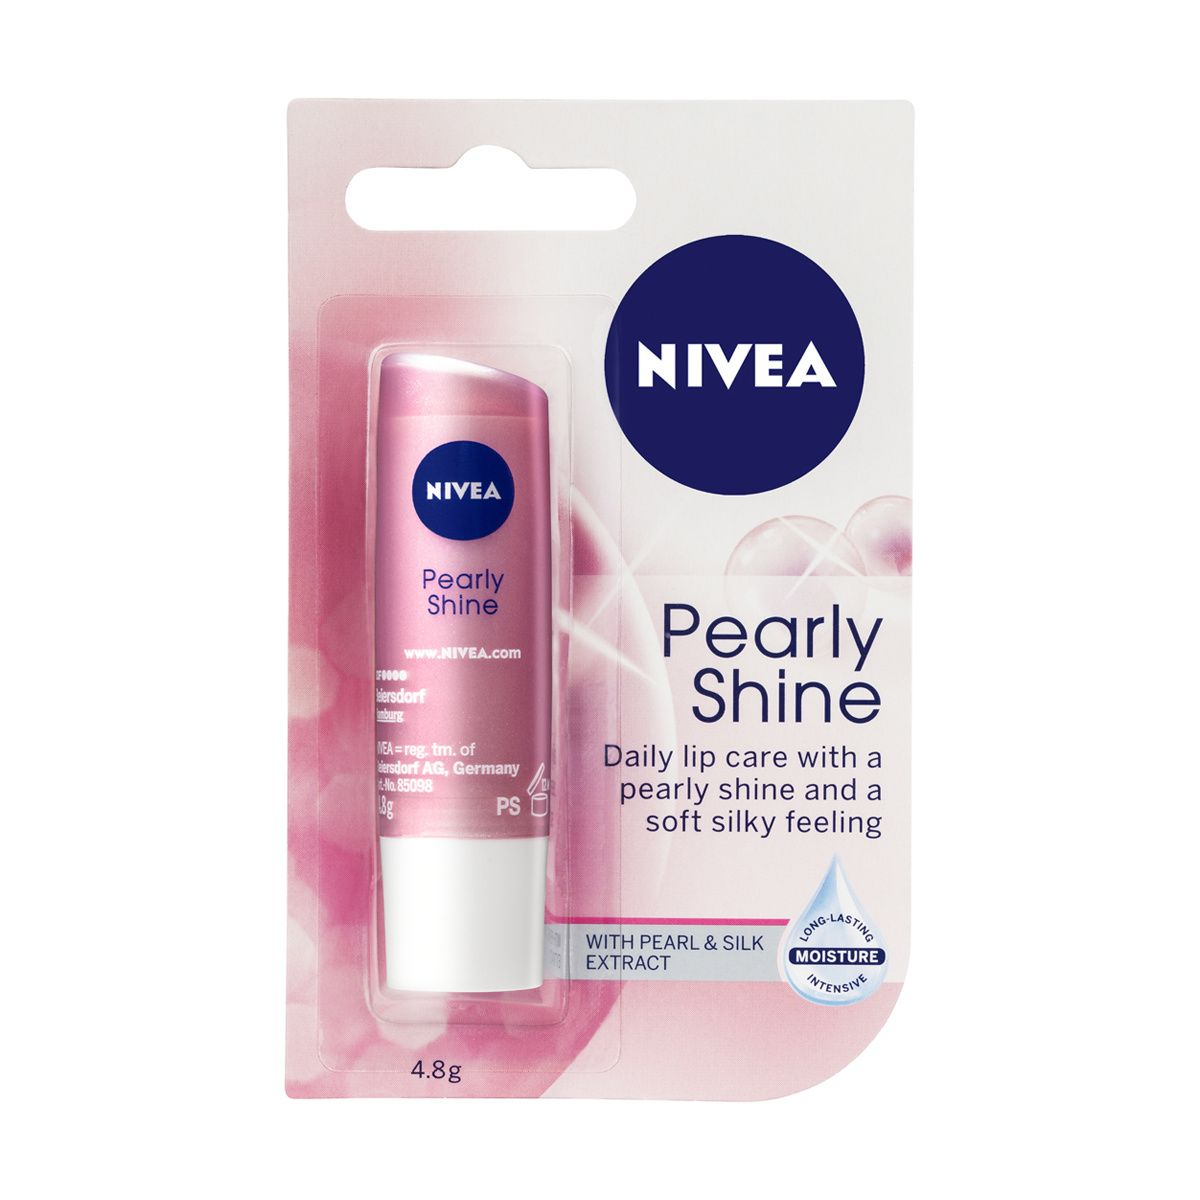 Pearly Shine Nivea Lip Balm In 2020 Lip Moisturizer Lip Balm